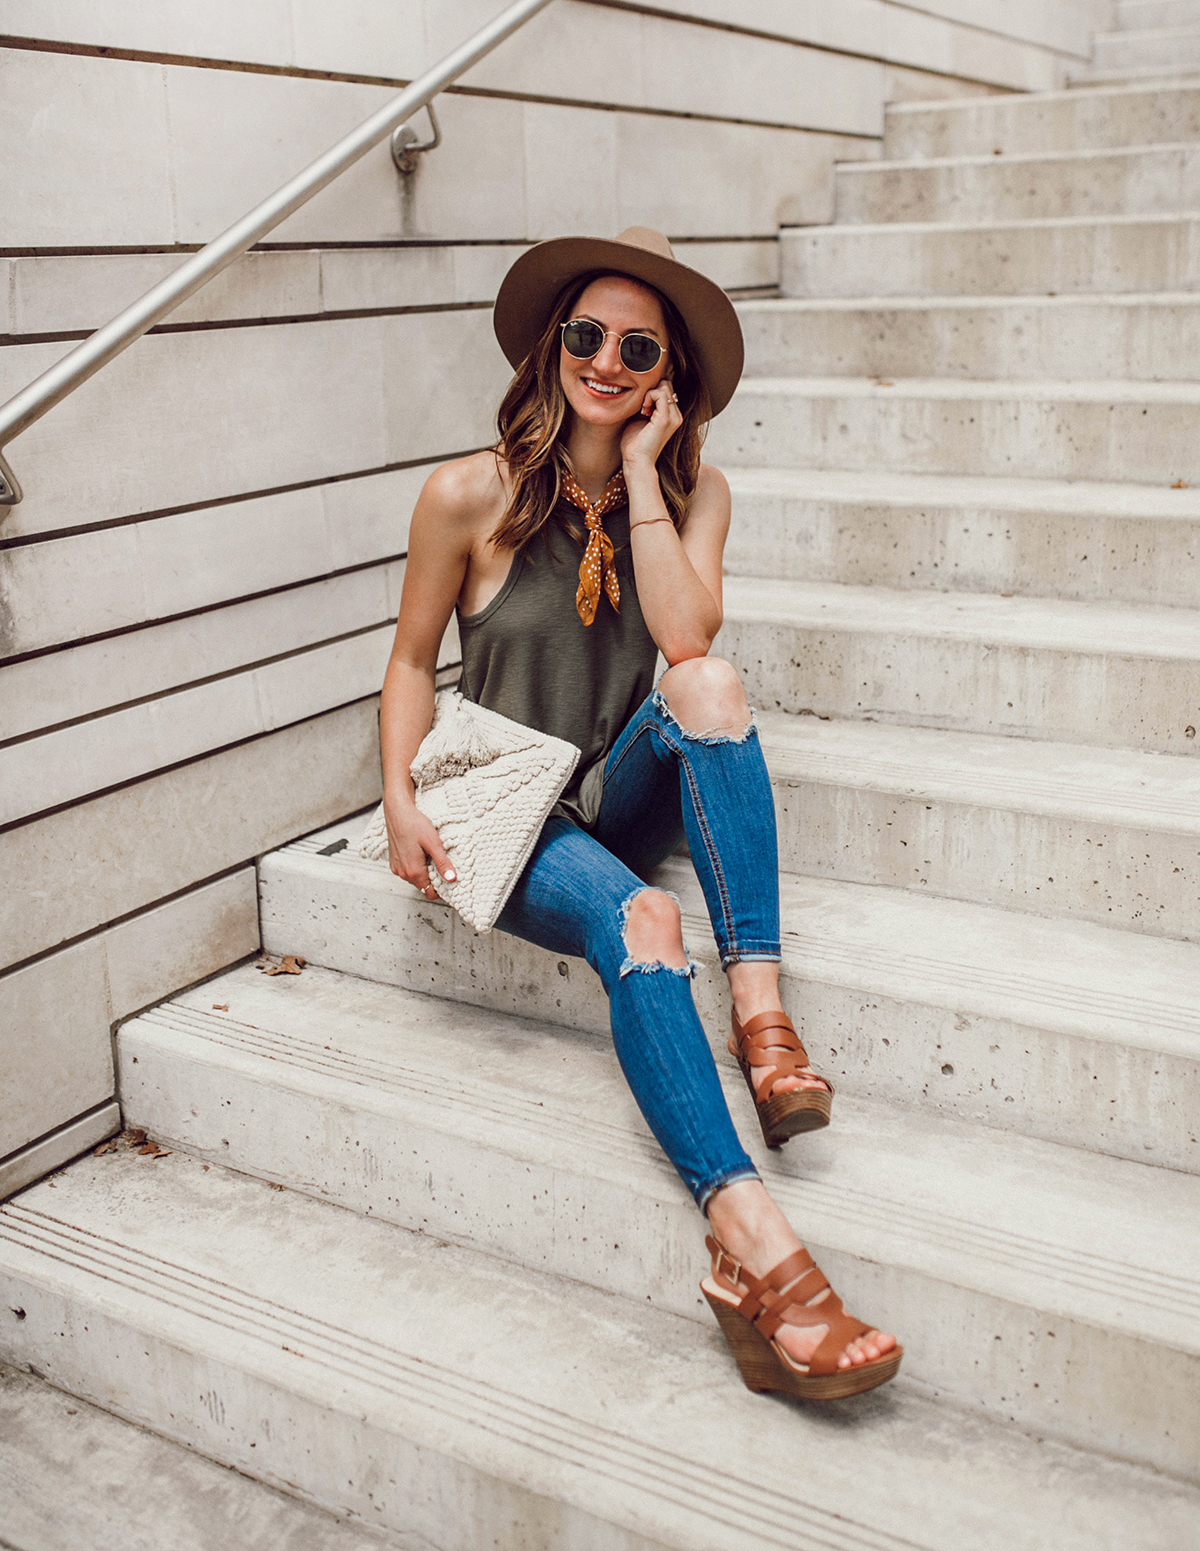 livvyland-blog-olivia-watson-austin-texas-fashion-style-blogger-sole-society-tan-sandal-wedges-8